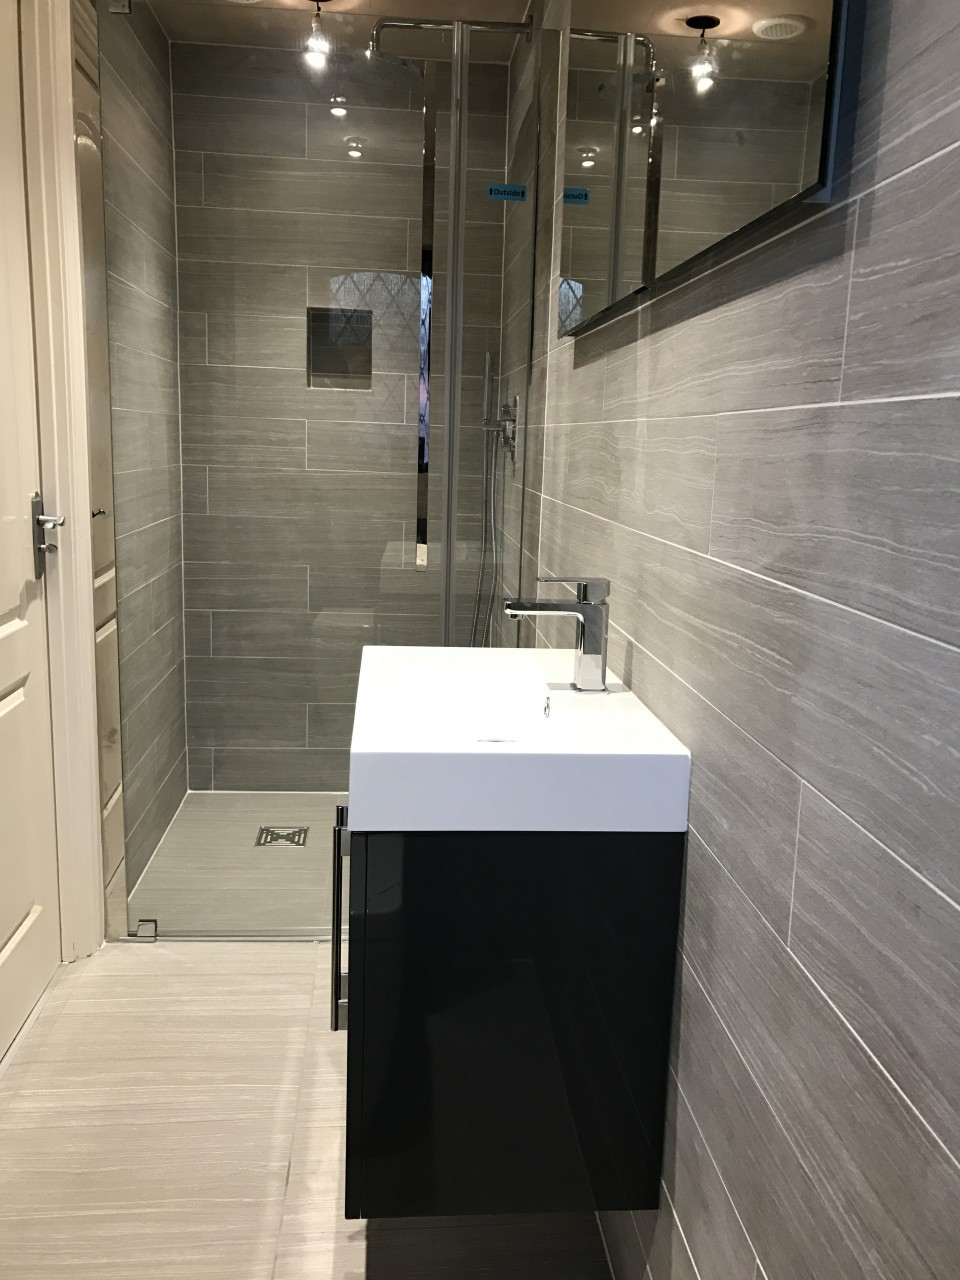 Fullsize Of En Suite Bathroom